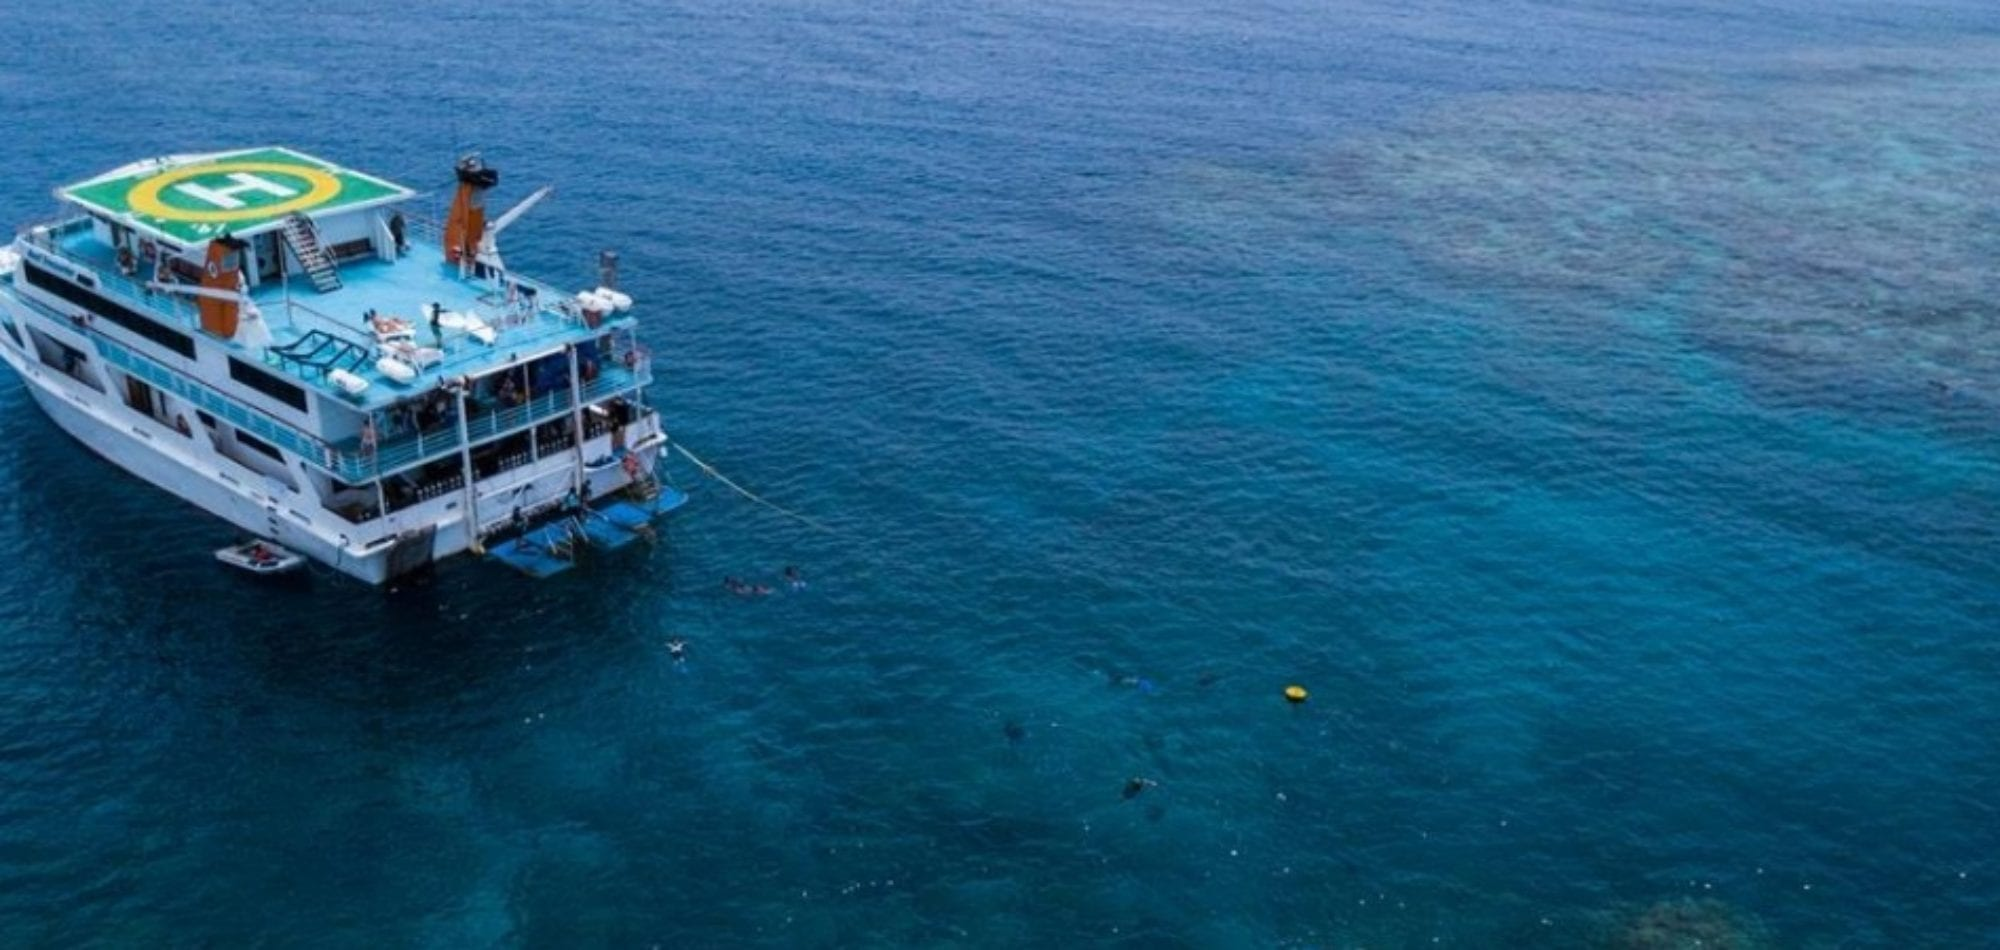 Cairns Liveaboard dive trip - Reef Encounter-